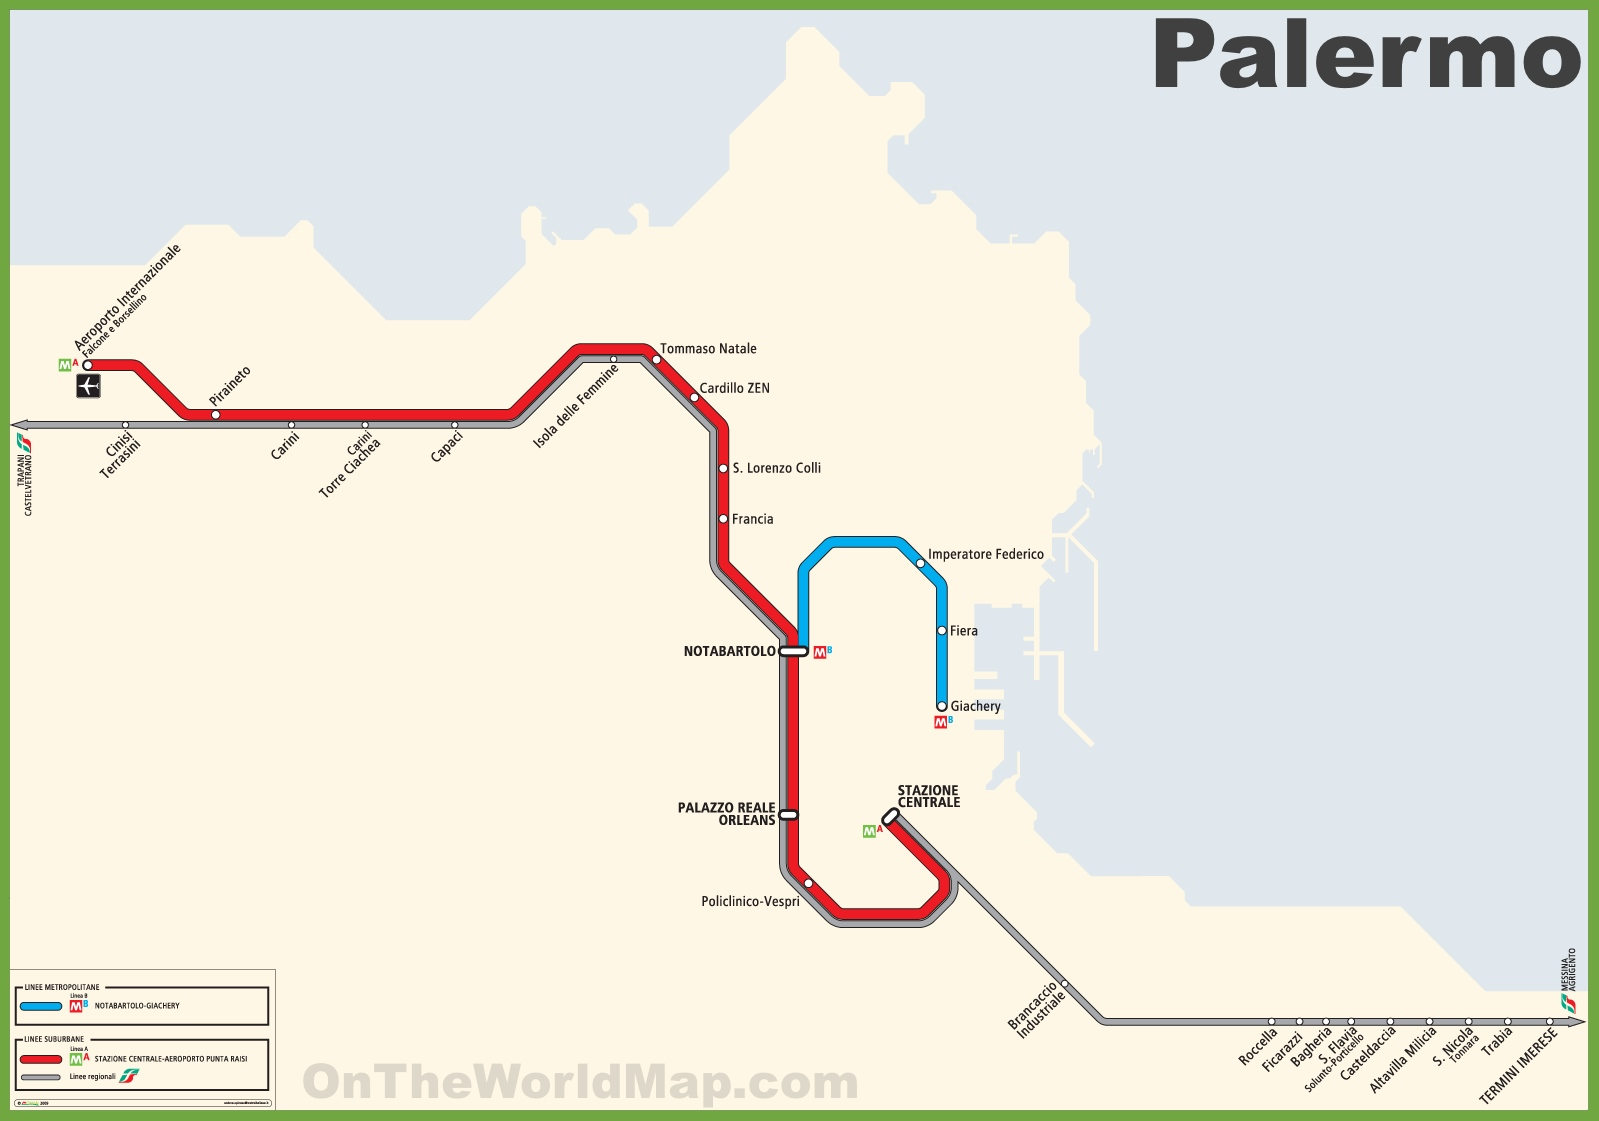 Italy Metro Map.Palermo Metro Map